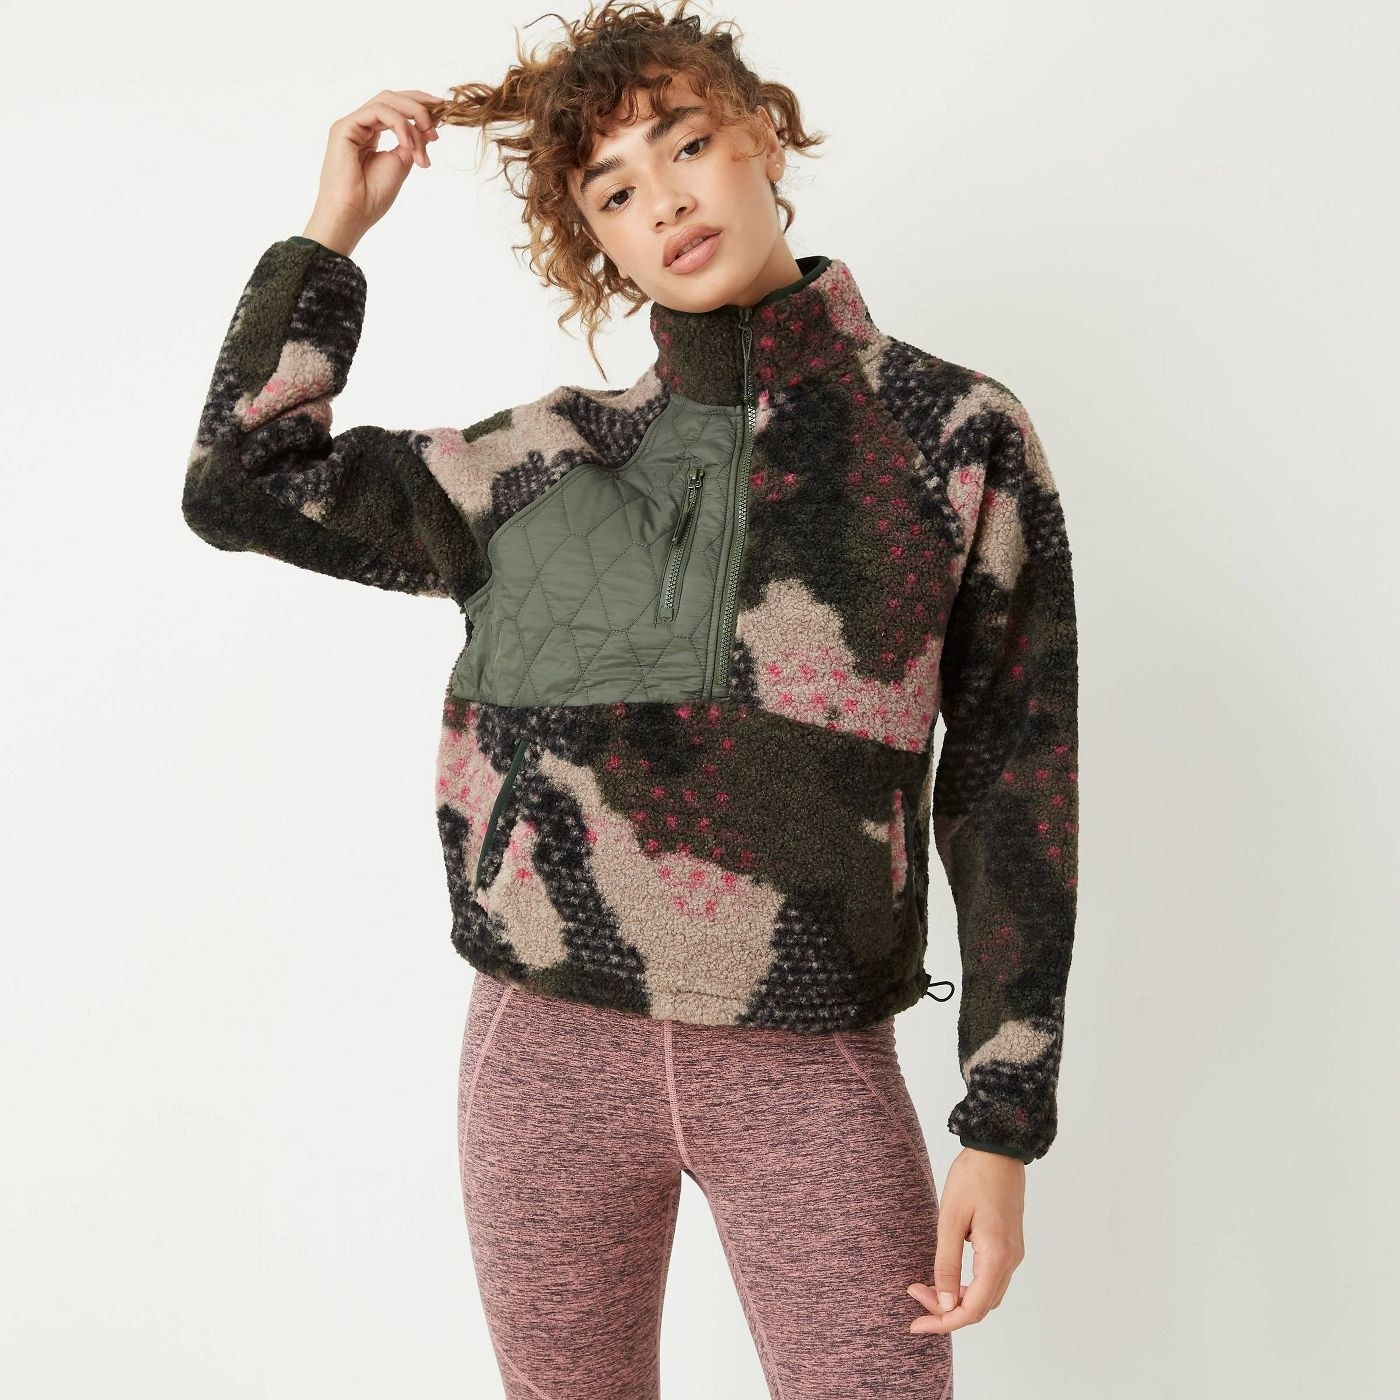 model wearing the quarter zip with green and tan camo print and pink dots and pockets on the sides and quilted green section with a pocket on the right chest